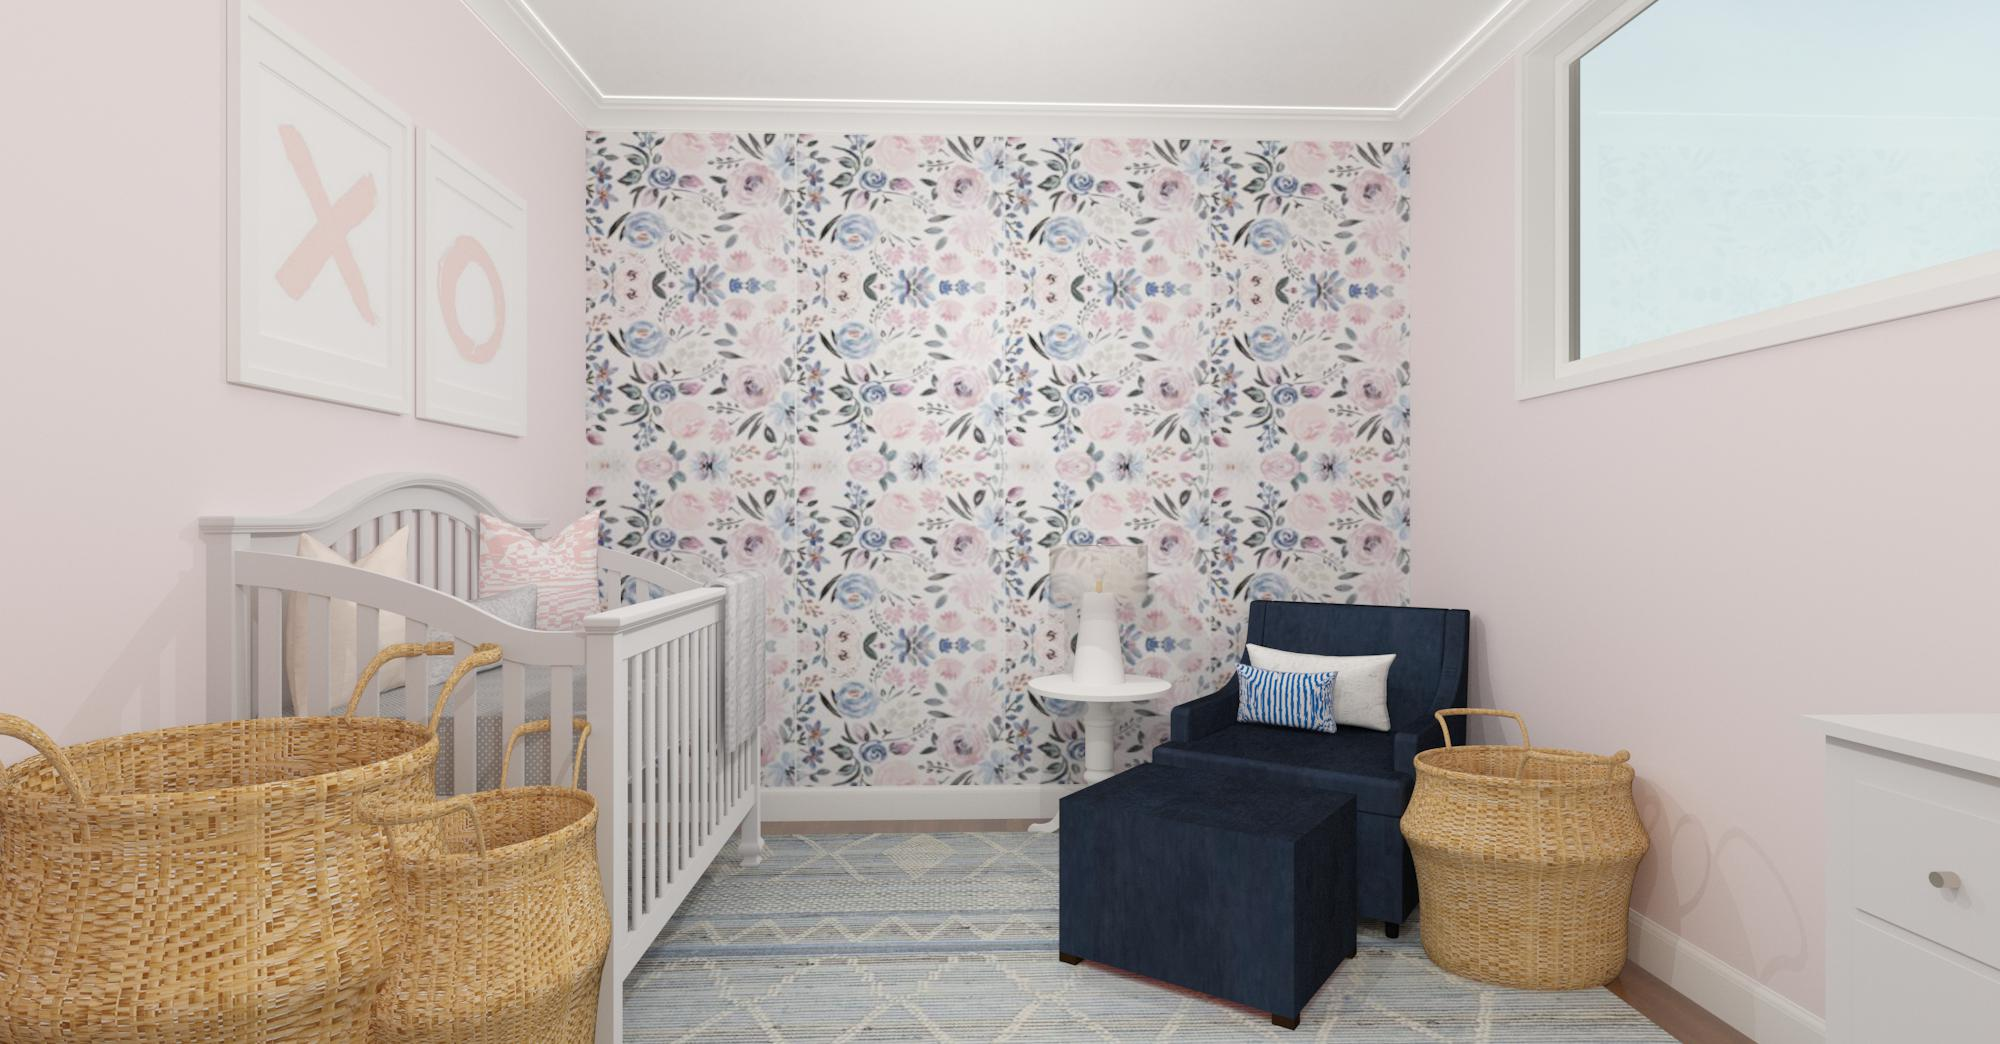 Rendering of a nursery